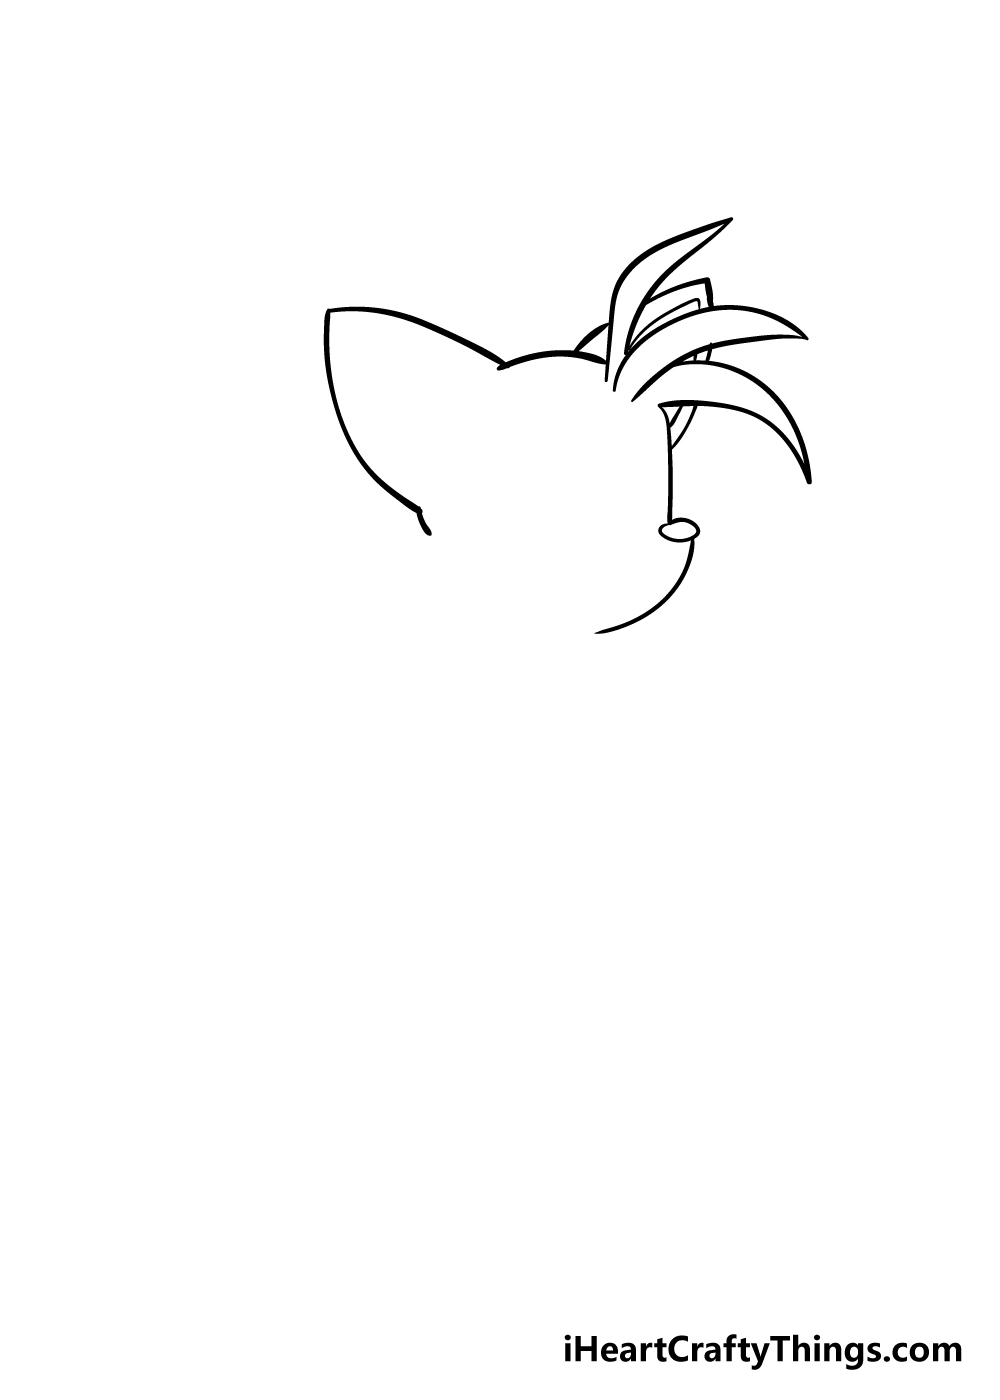 tails drawing step 2